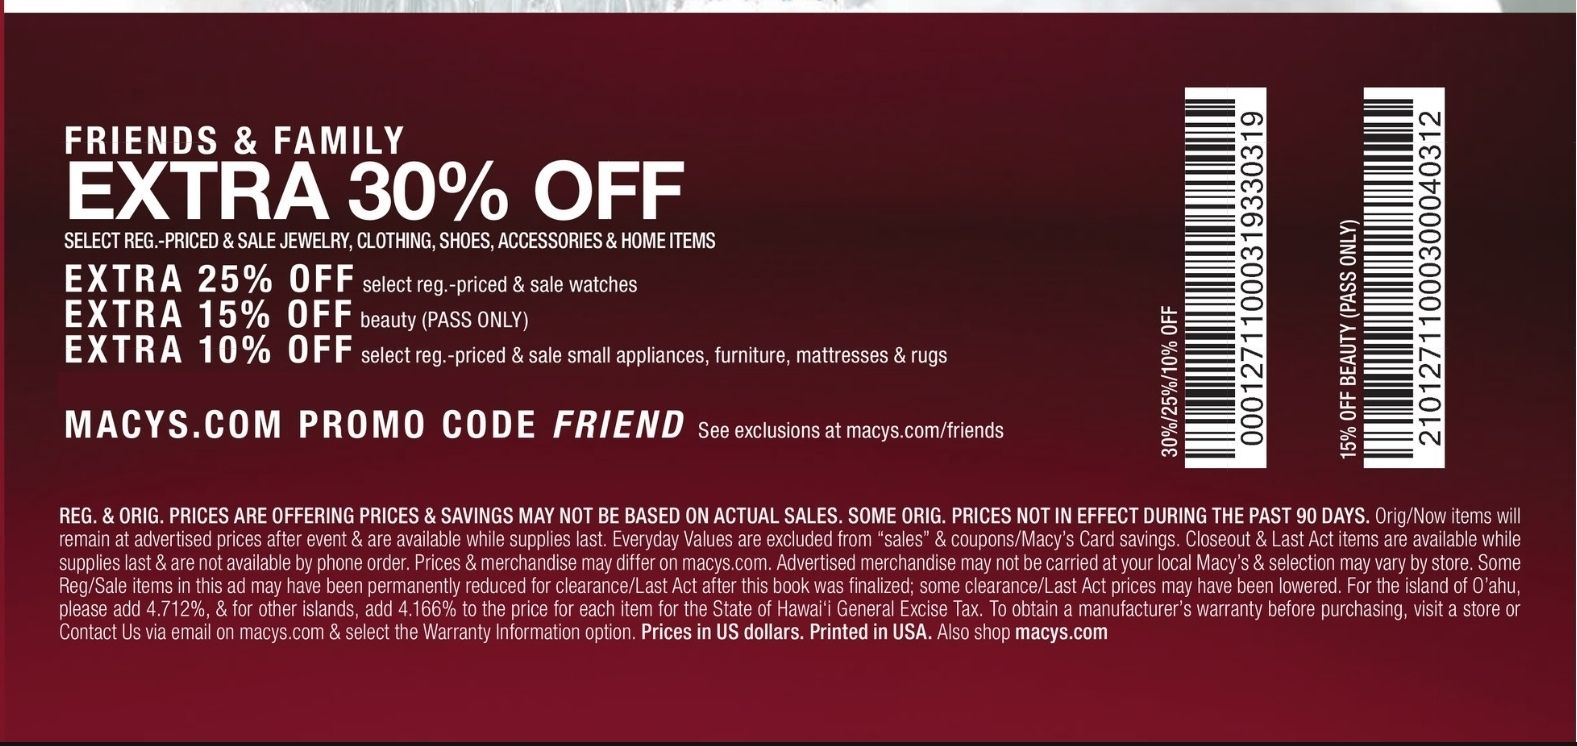 Macy's Instore Coupons